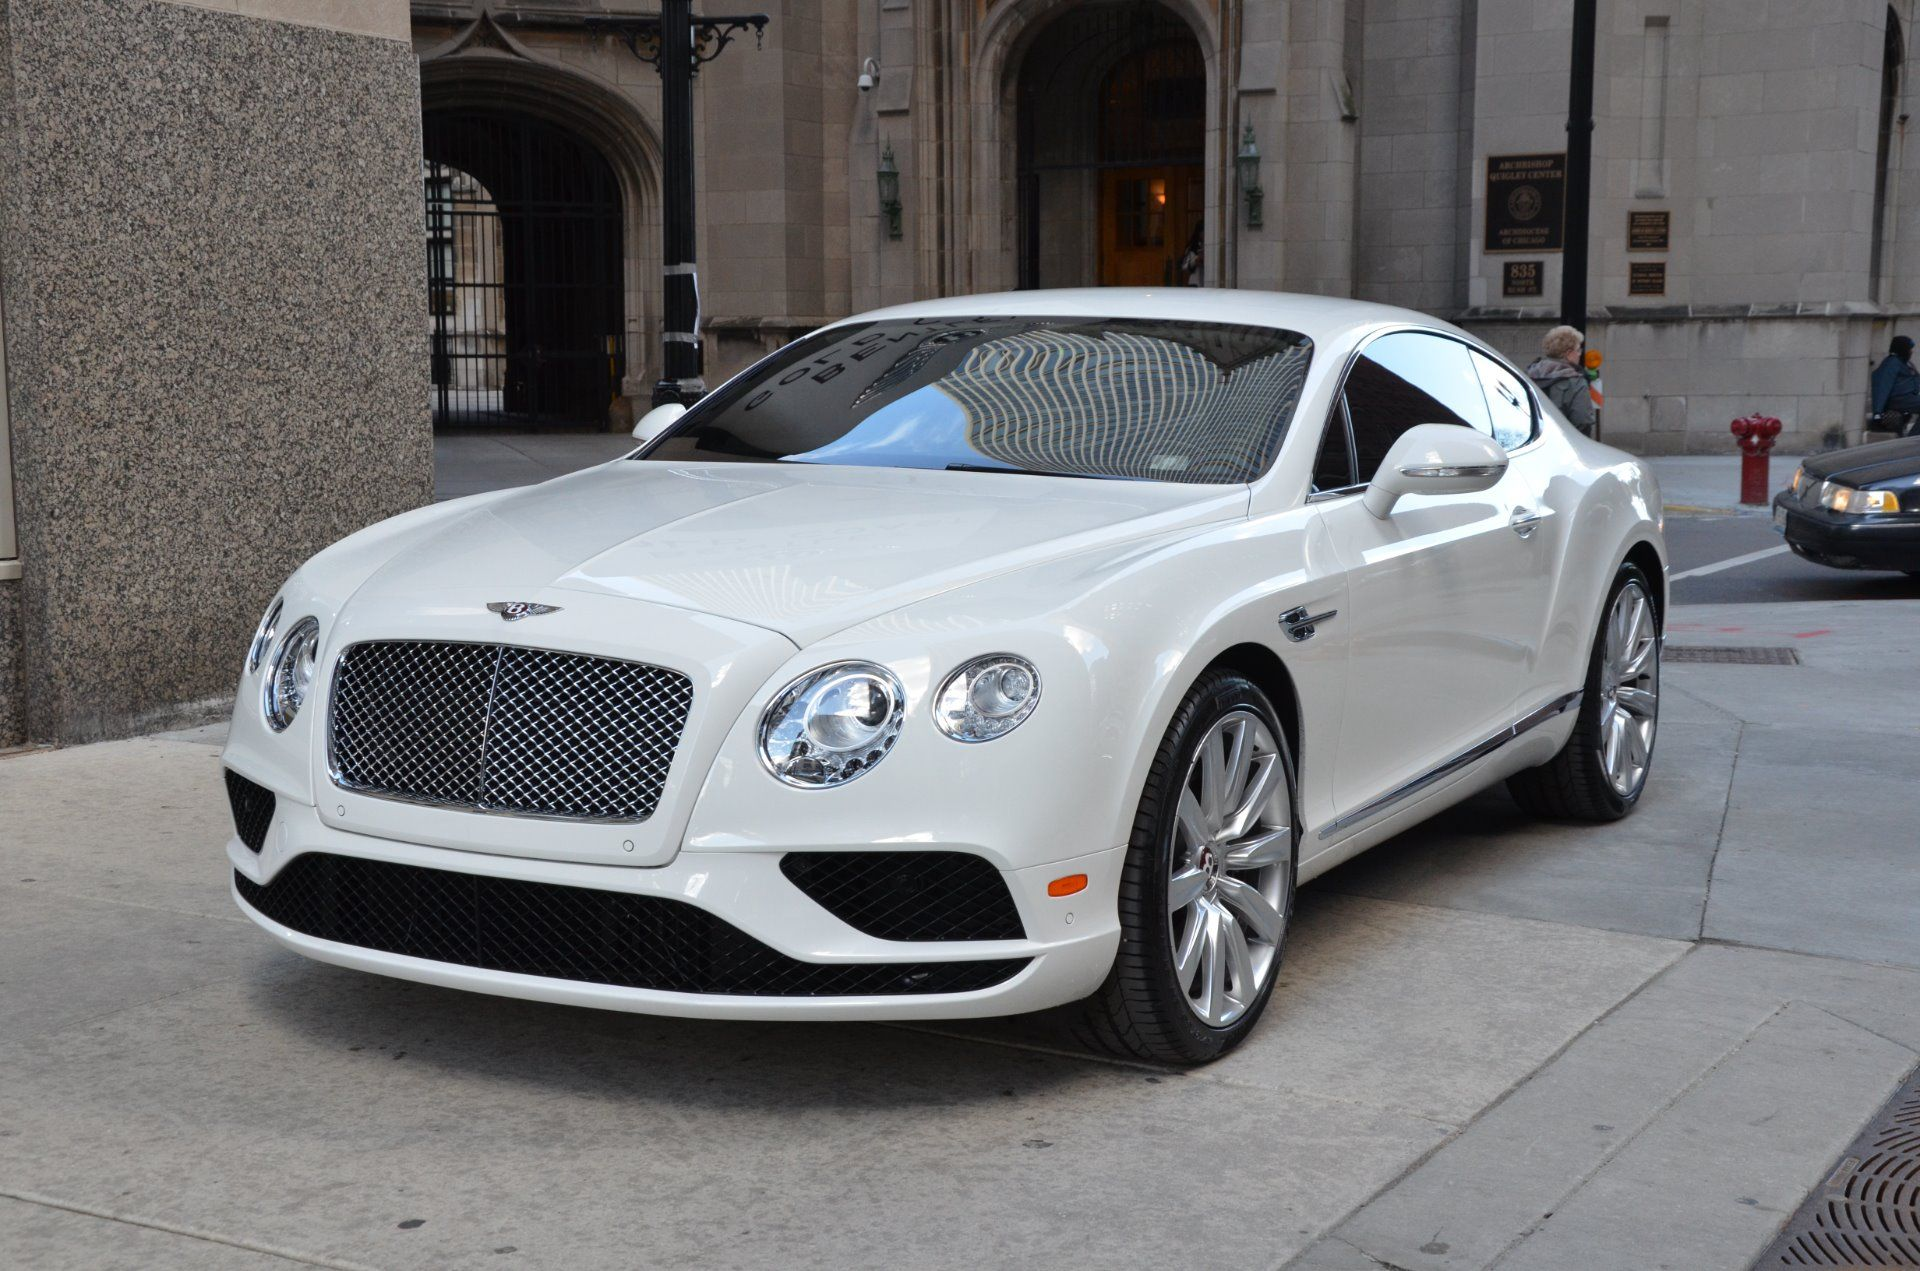 Bentley continental gt w12 review autoevolution - Spy Picture New Bentley Continental Gt 2018 Sport Cars Supercars Pinterest Bentley Continental Gt Bentley Continental And Bentley Car